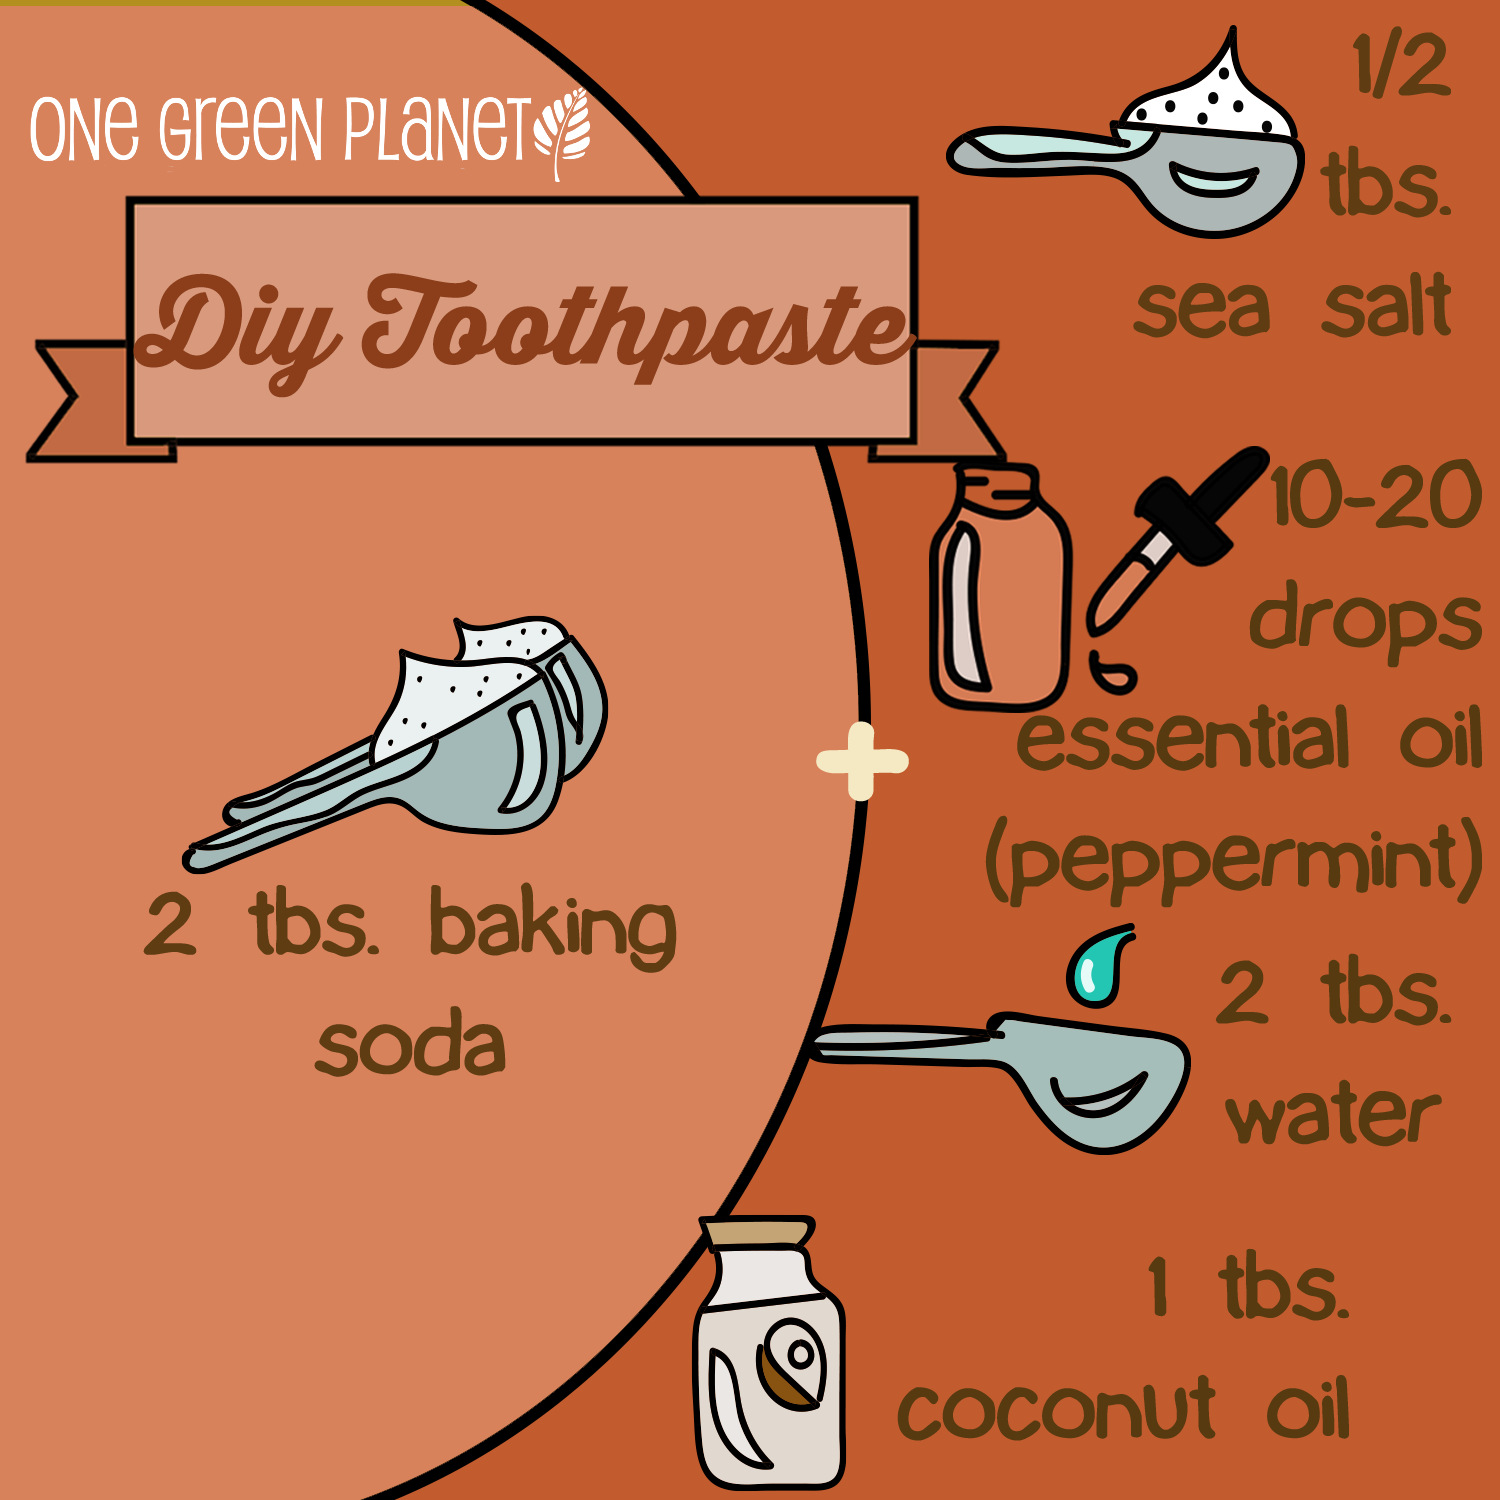 ultimate guide to diy hygiene one green planet